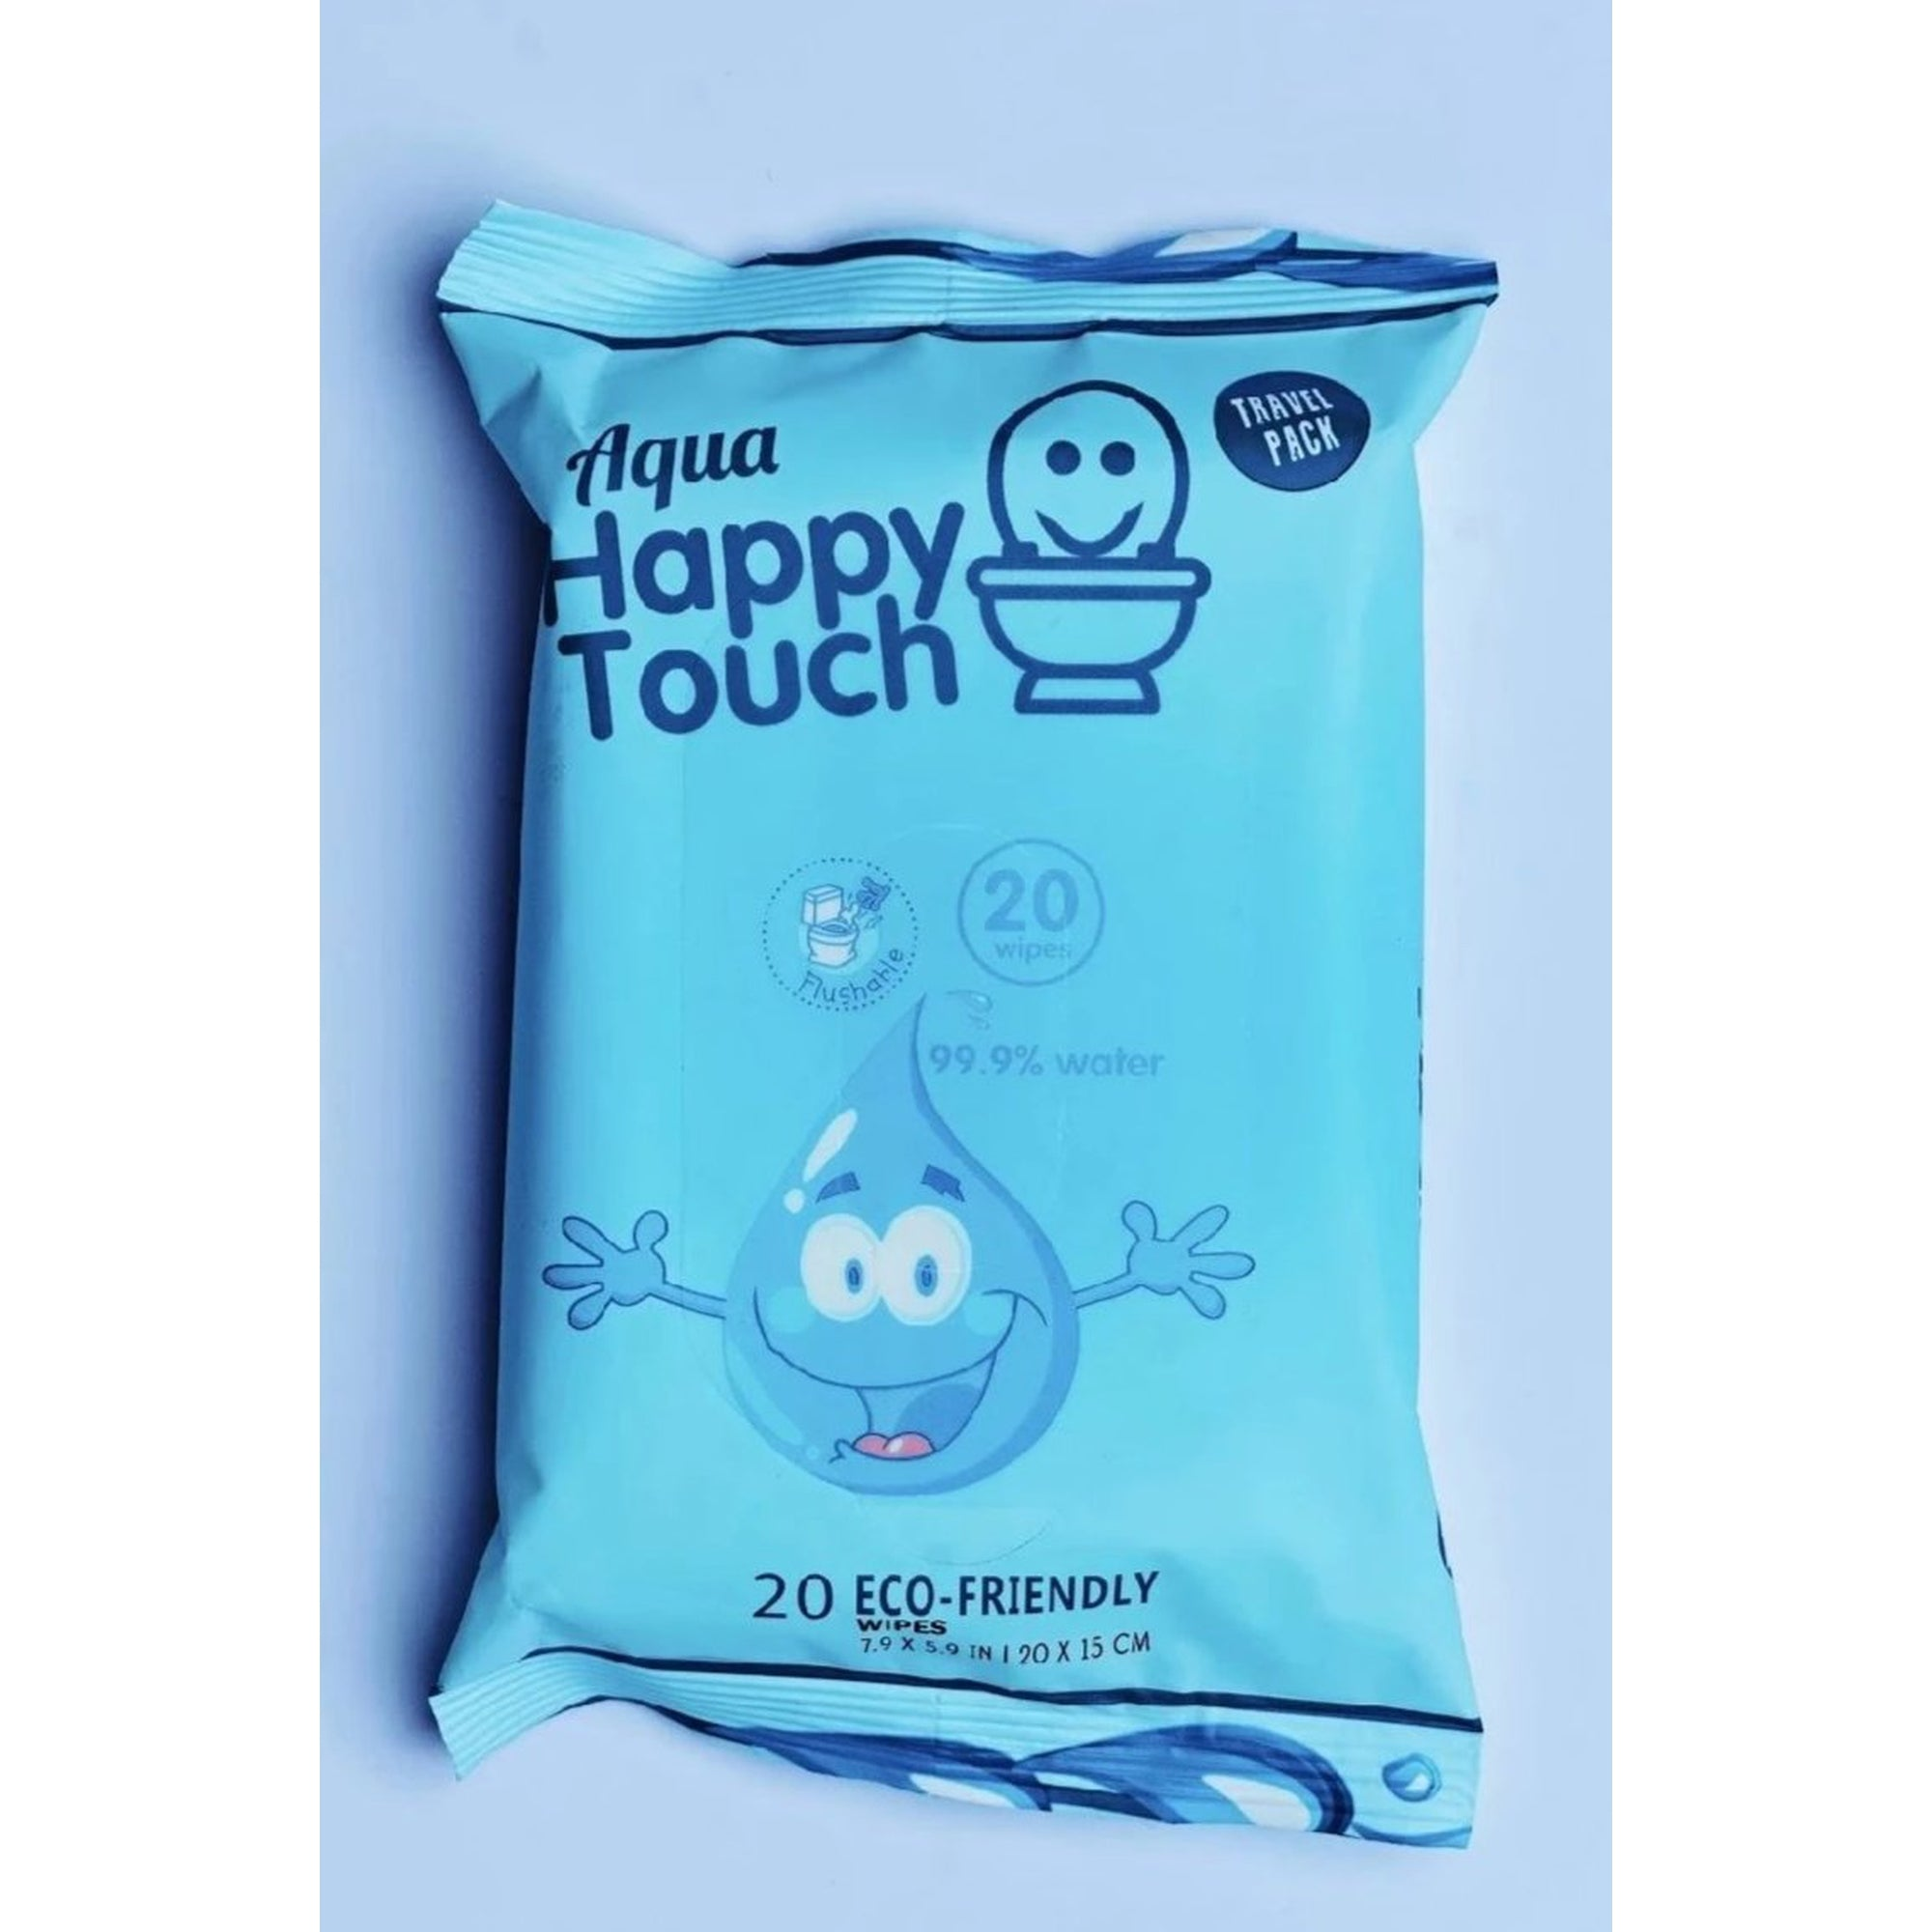 Aqua Happy Touch Flushable Wipes 20's-Wipes-Mother and Baby Shop Kenya's #1 Online Baby Shop